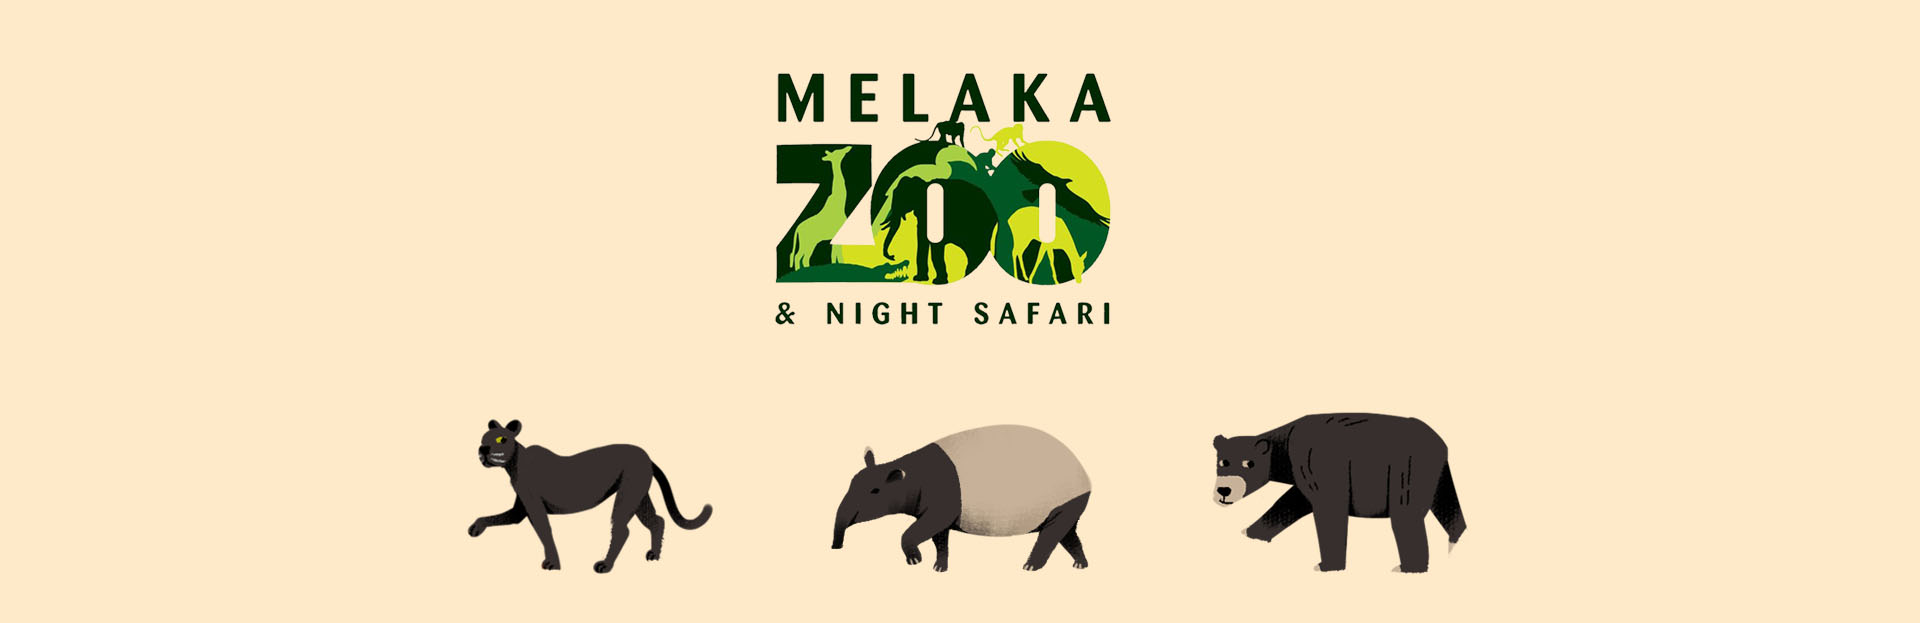 Melaka Zoo night safari logo animal